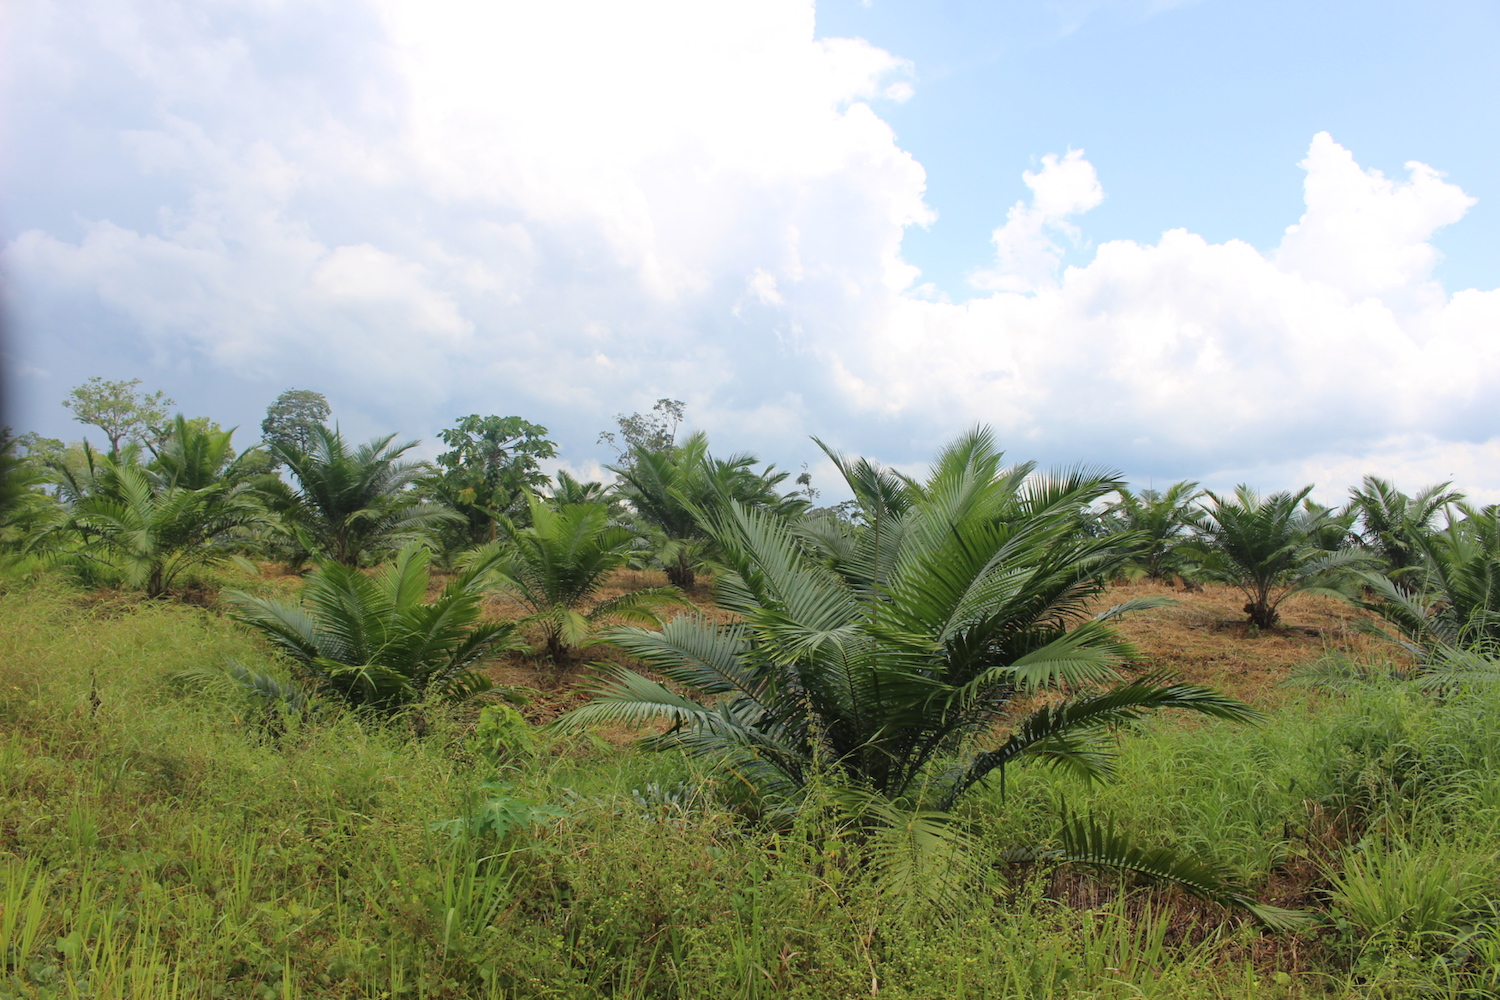 Another recently established oil palm plantation in a community in the parish of Nuevo Paraíso. Photo by Daniela Aguilar